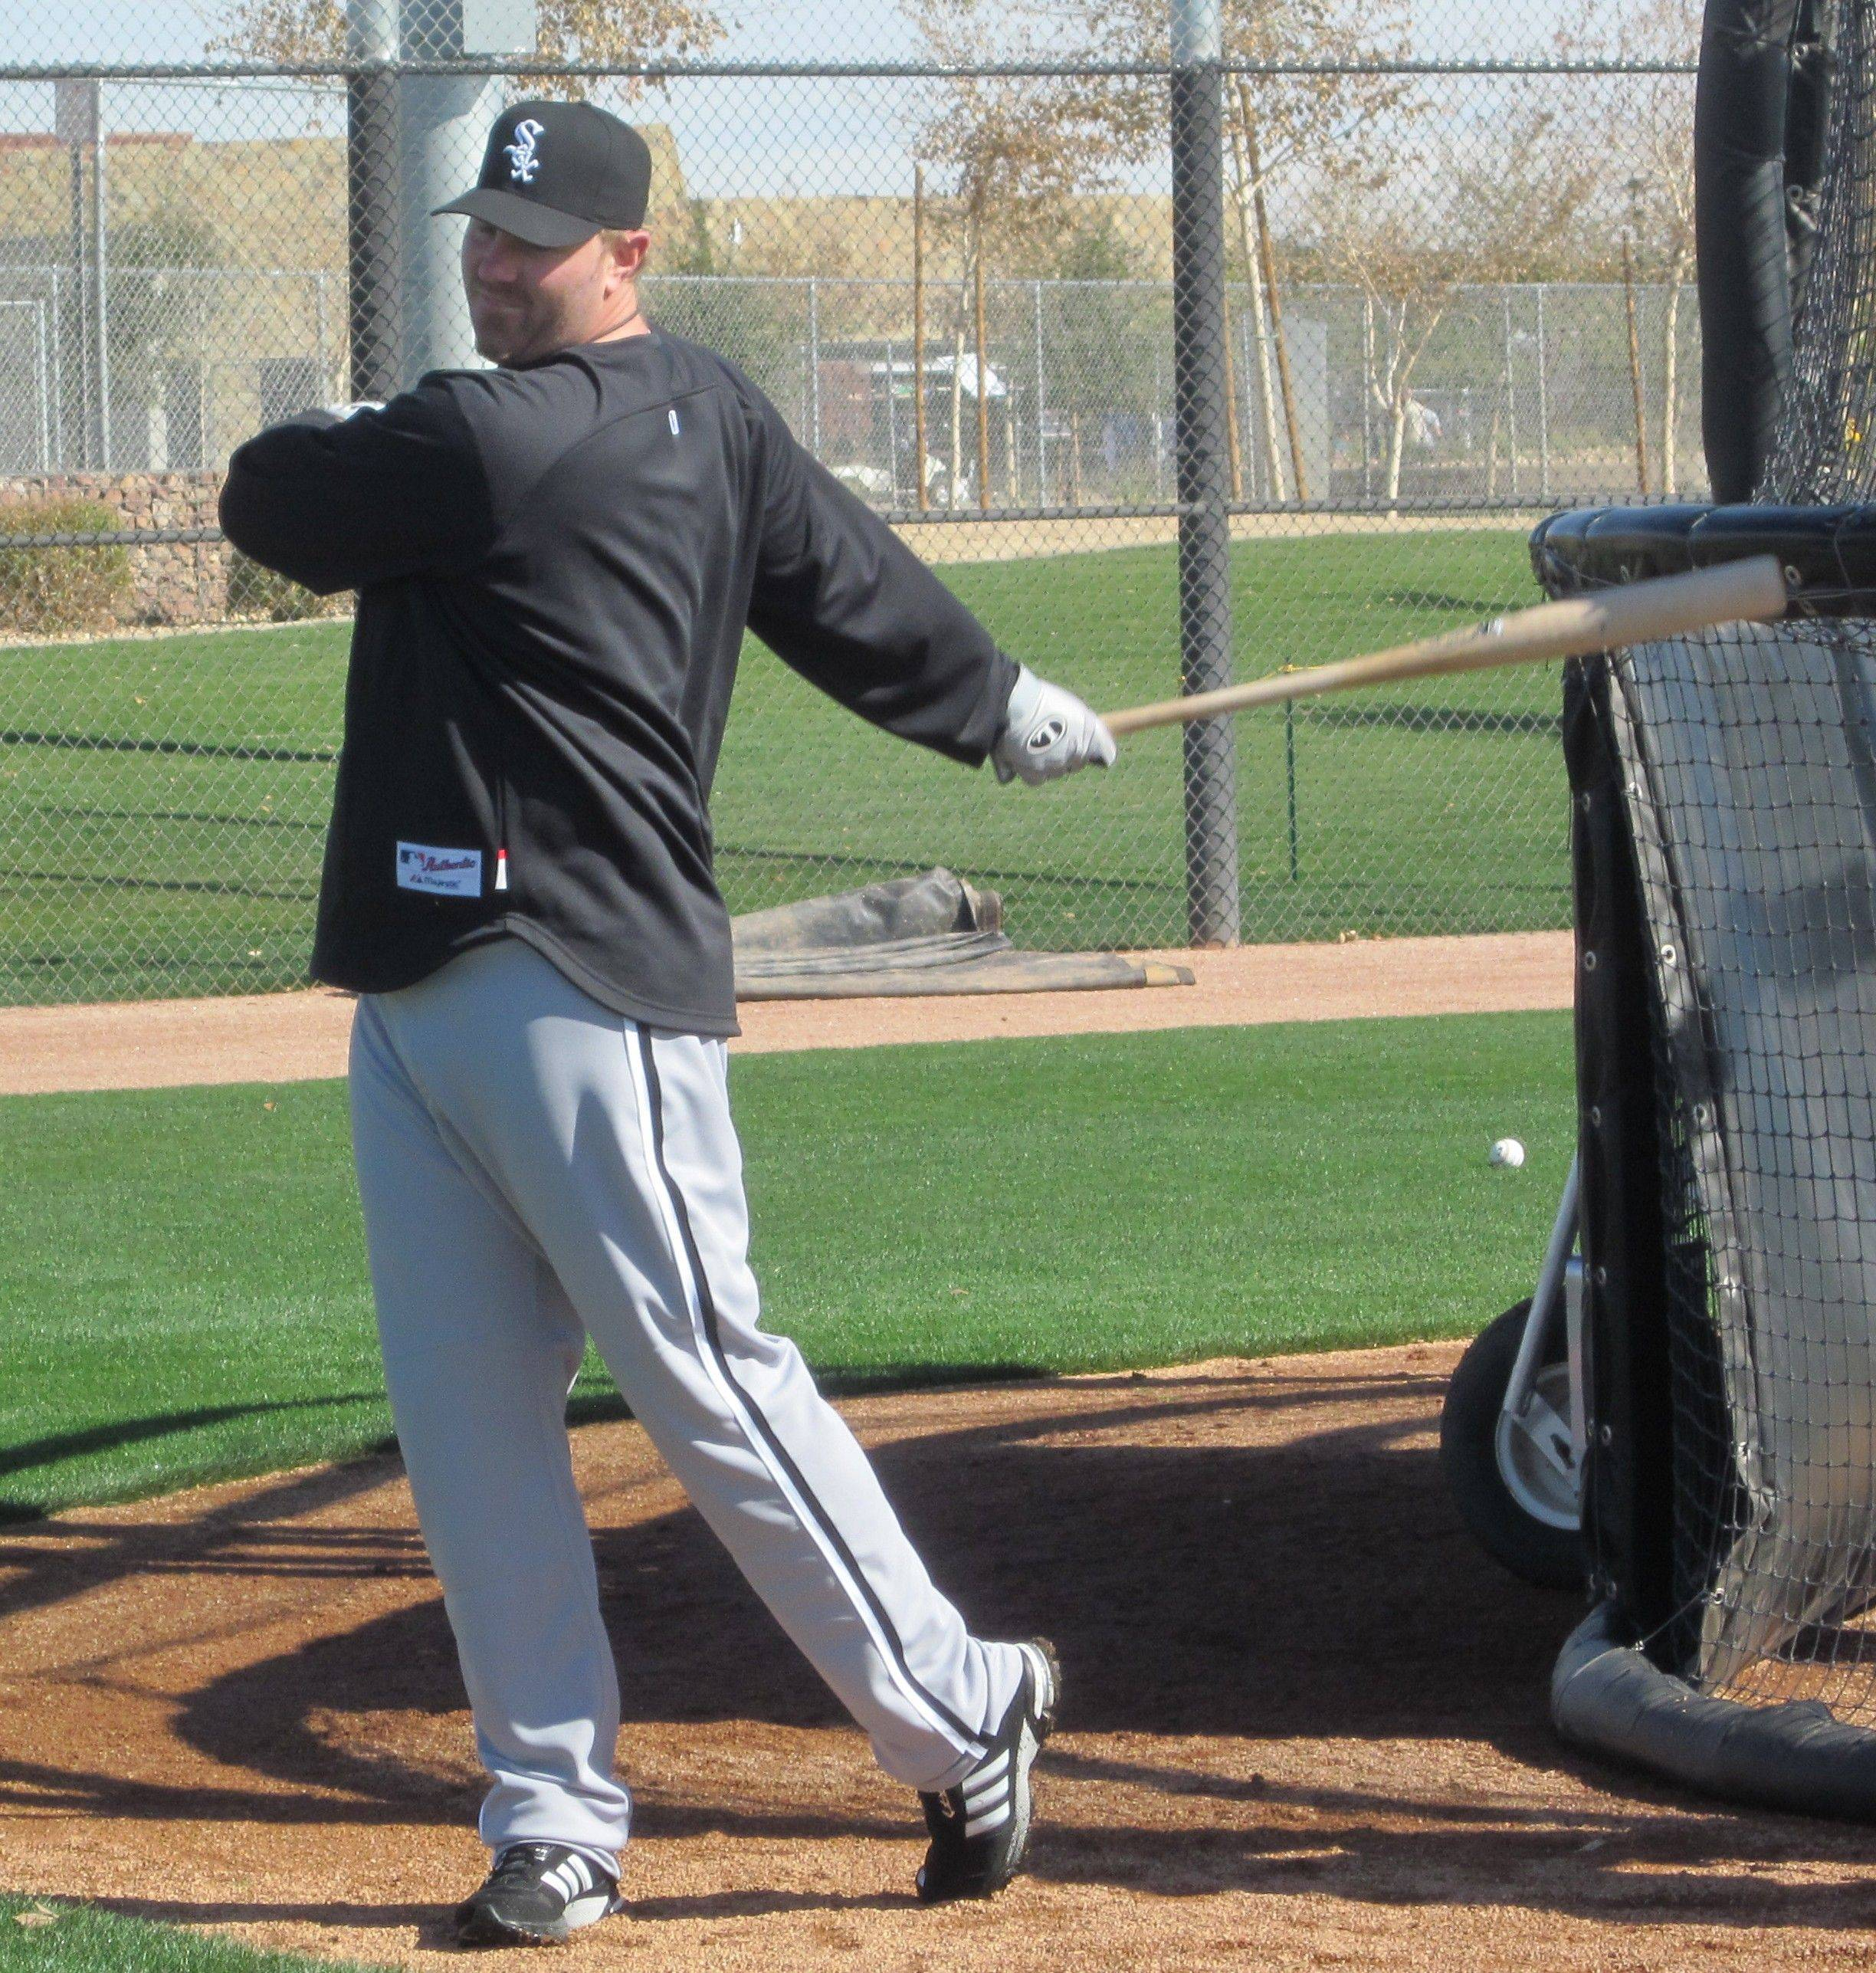 White Sox slugger Adam Dunn gets loose Monday at the White Sox training facilities in Glendale, Ariz.